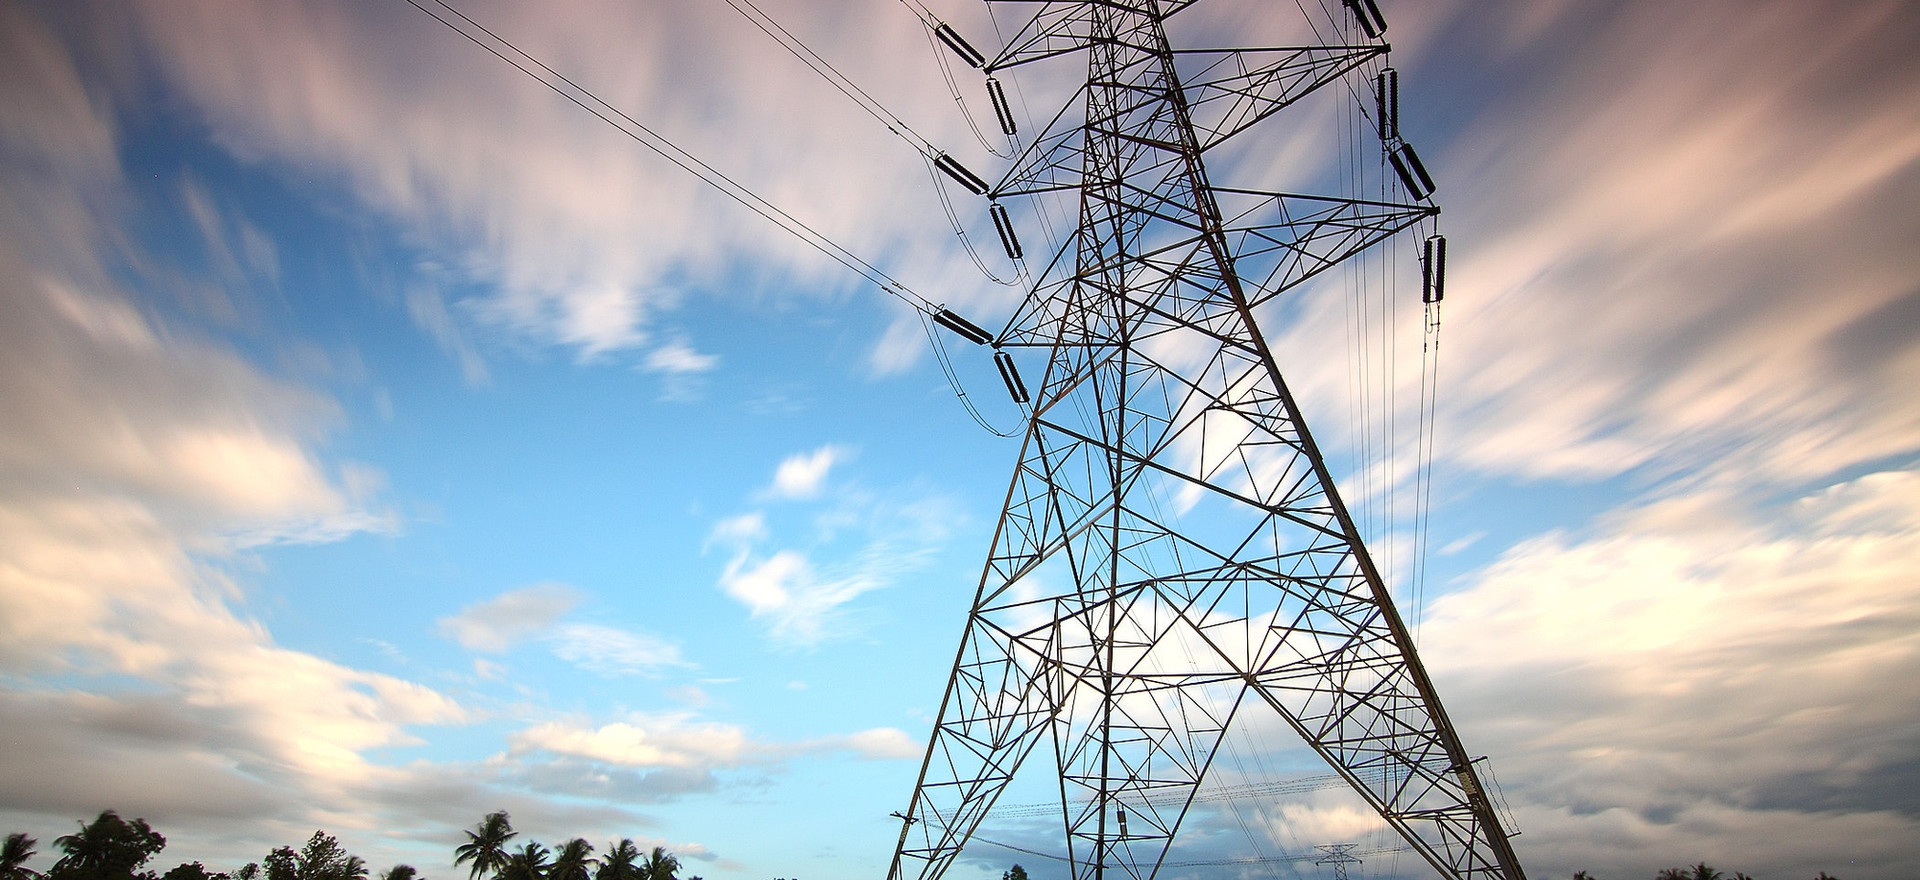 clouds-electricity-energy-157827.jpg